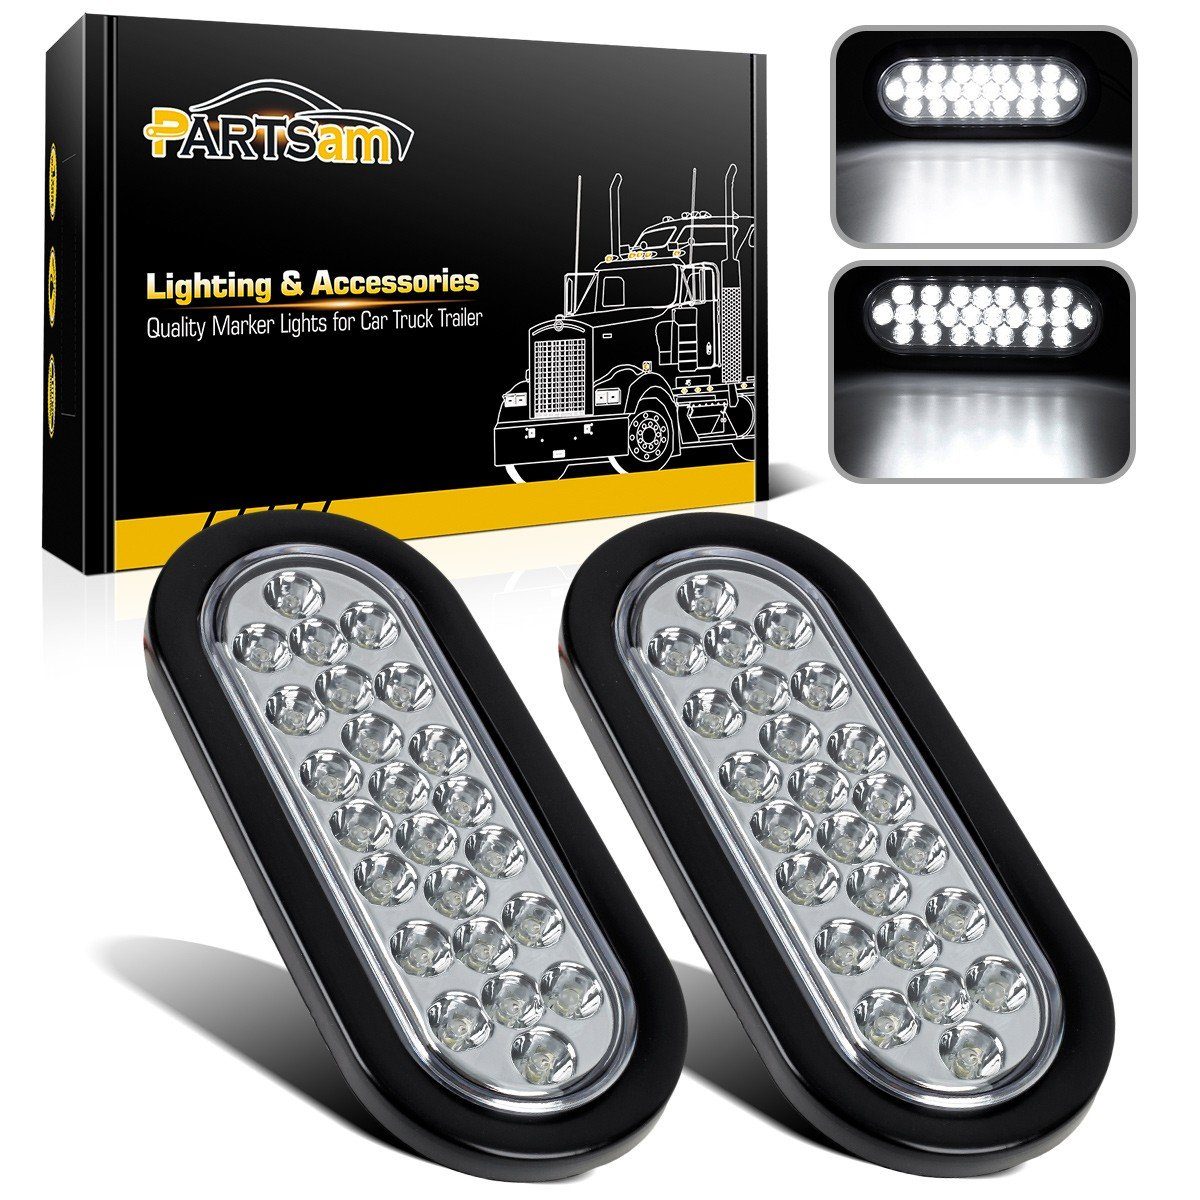 Partsam 2x Oval Clear Lens White Stop Turn Tail Backup 1965 Ford F100 Light Wiring Color Reverse Fog Lights Lamps Rubber Flush Mount 6 24 Led For Truck Trailer Boat Rv